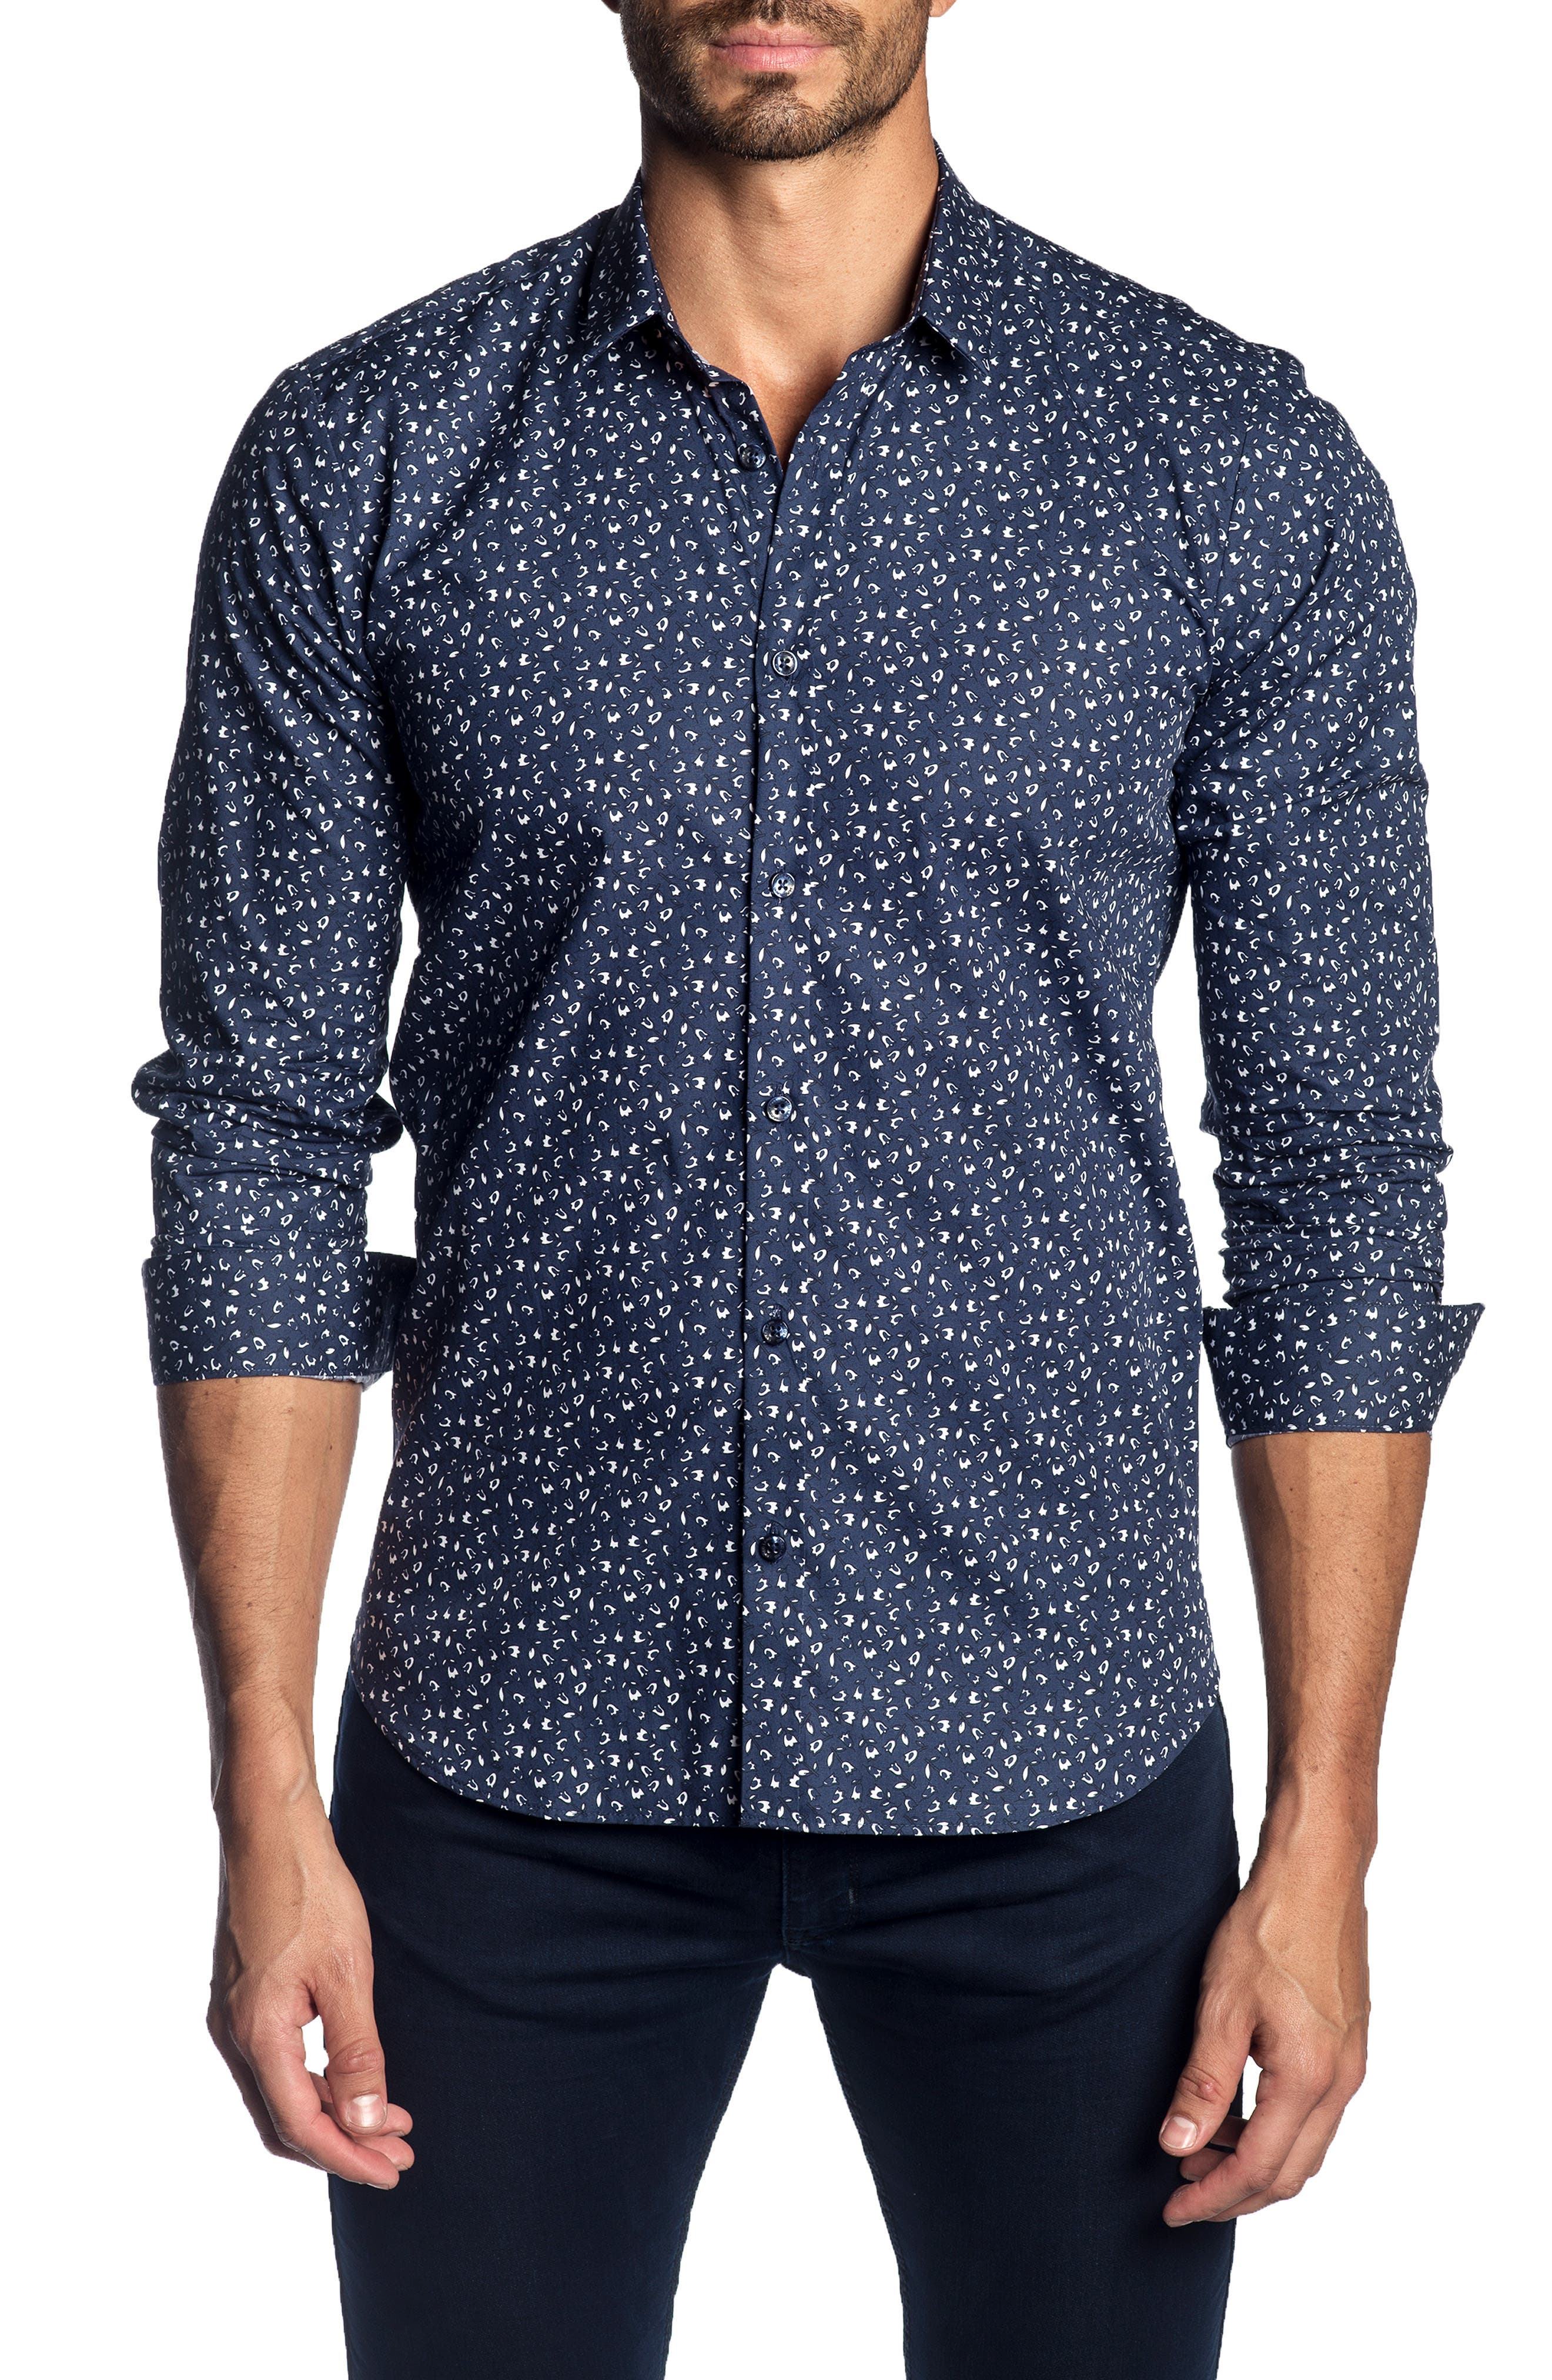 JARED LANG Trim Fit Patterned Sport Shirt in Navy